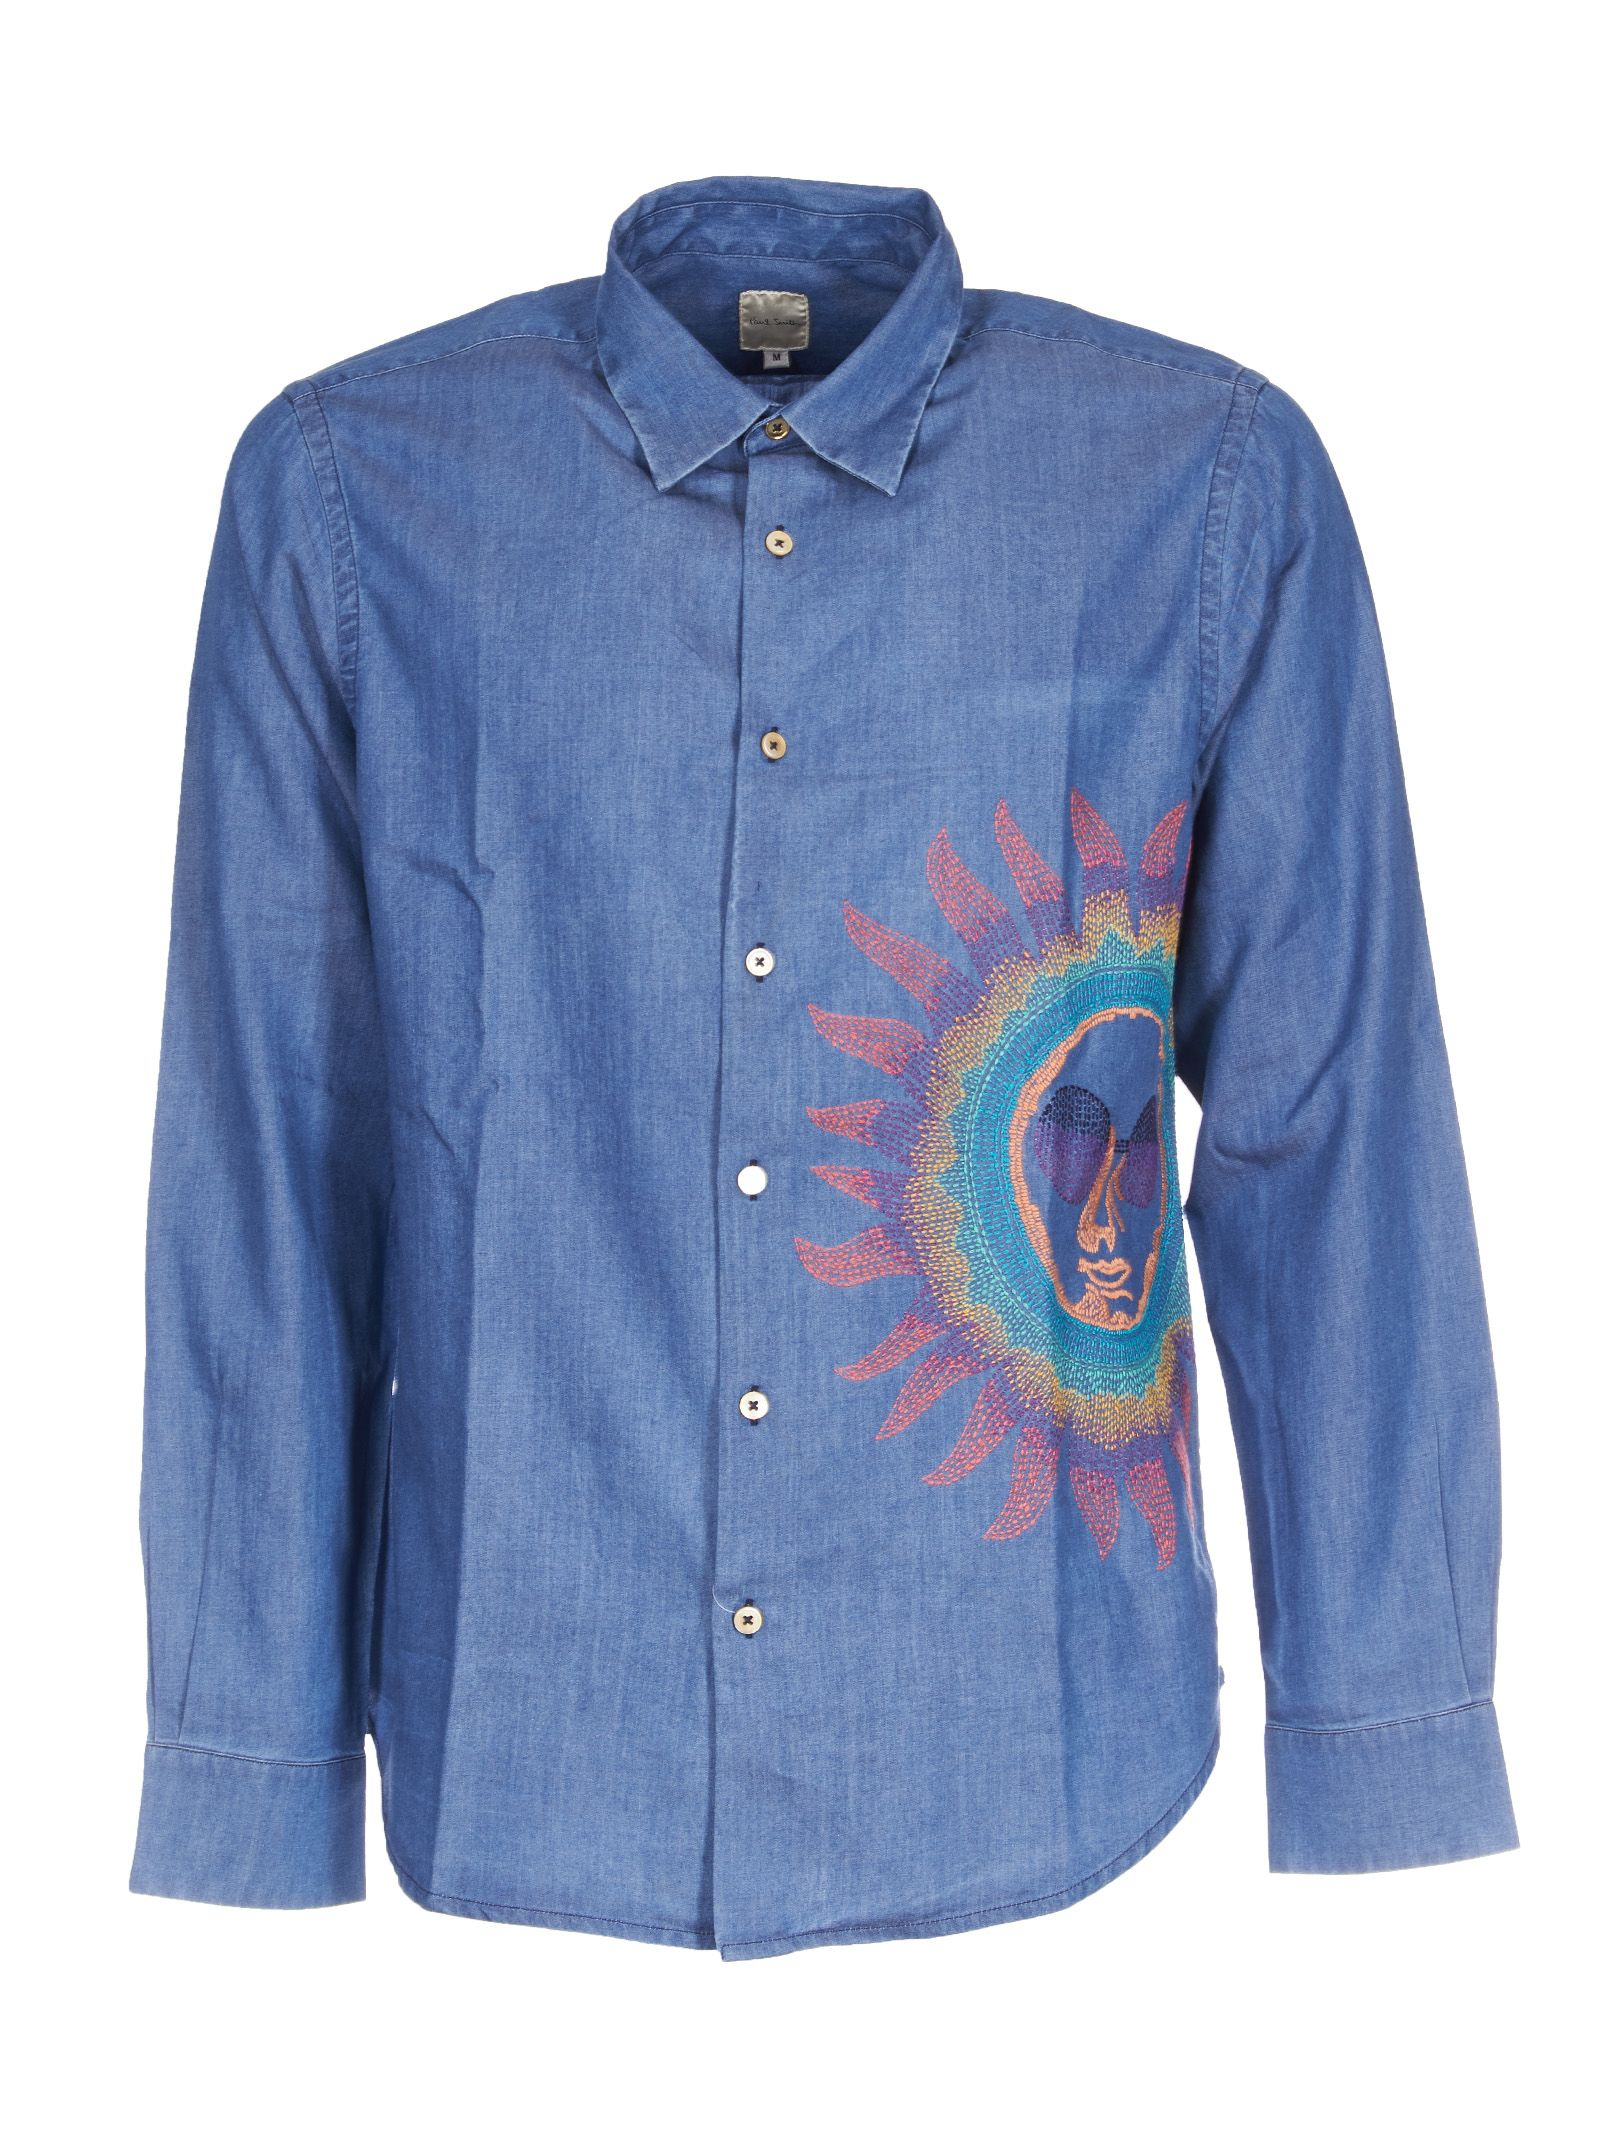 Paul Smith Embroidered Shirt